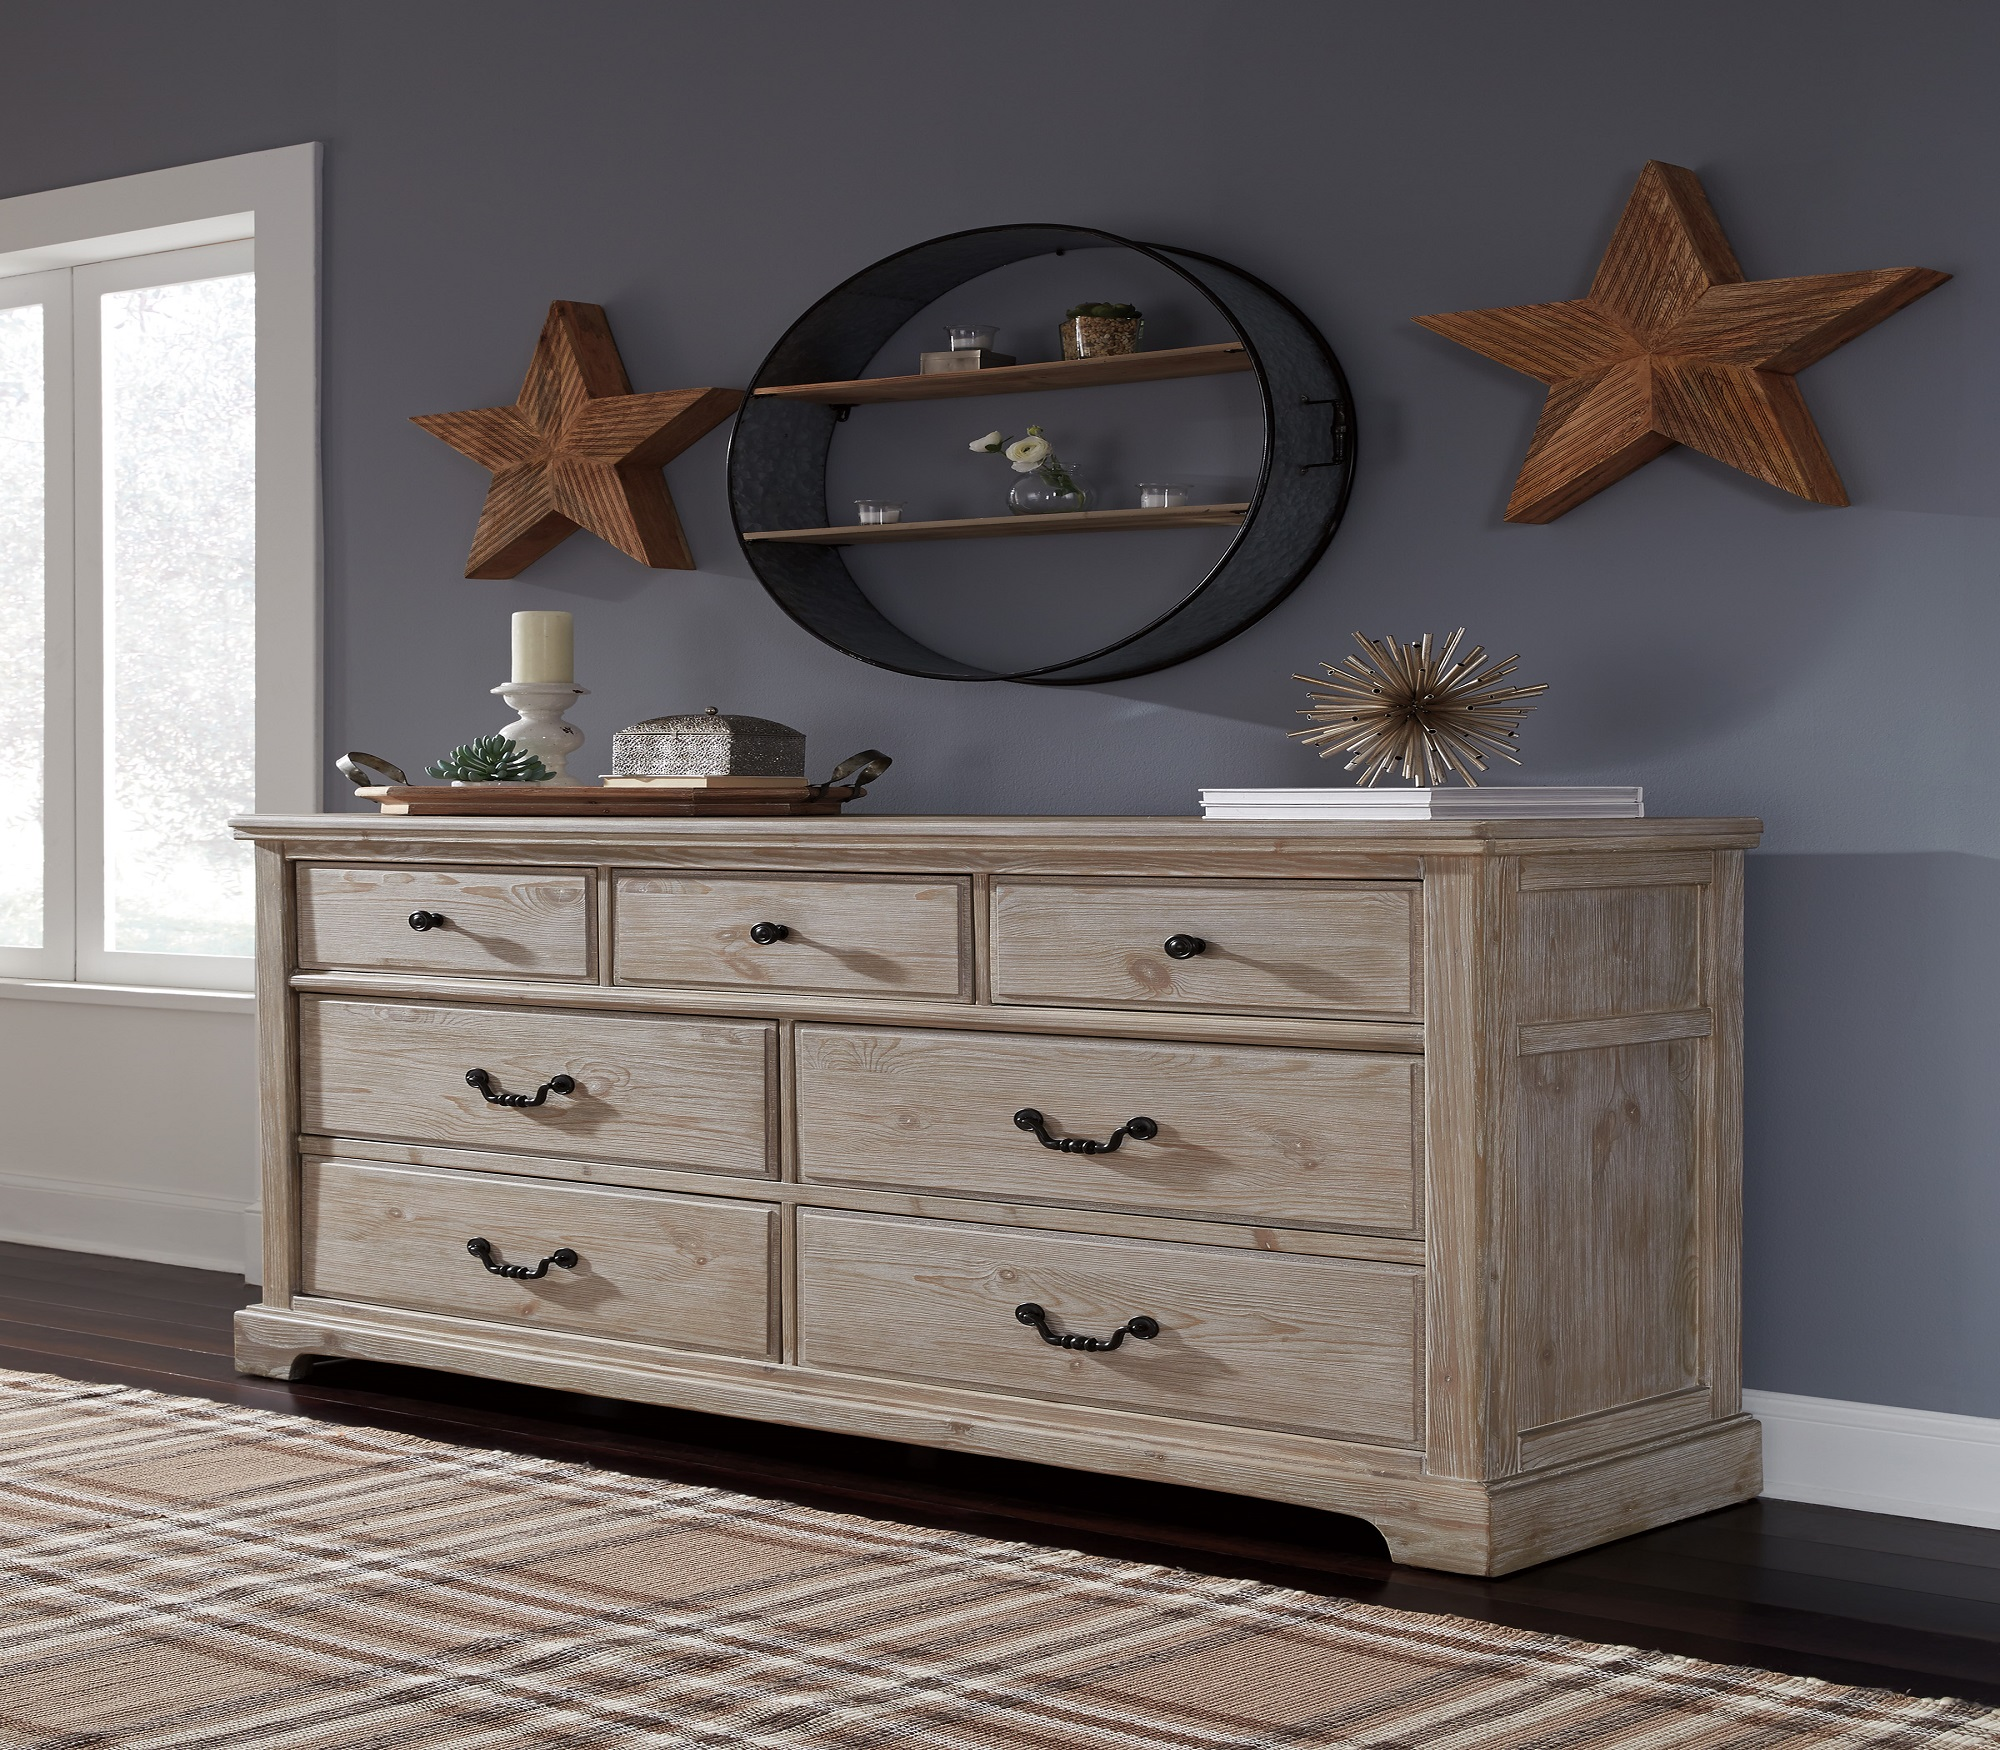 Charmyn, B722-31, Dressers by Midha Furniture to Brampton, Mississauga, Etobicoke, Toronto, Scraborough, Caledon, Oakville, Markham, Ajax, Pickering, Oshawa, Richmondhill, Kitchener, Hamilton and GTA area